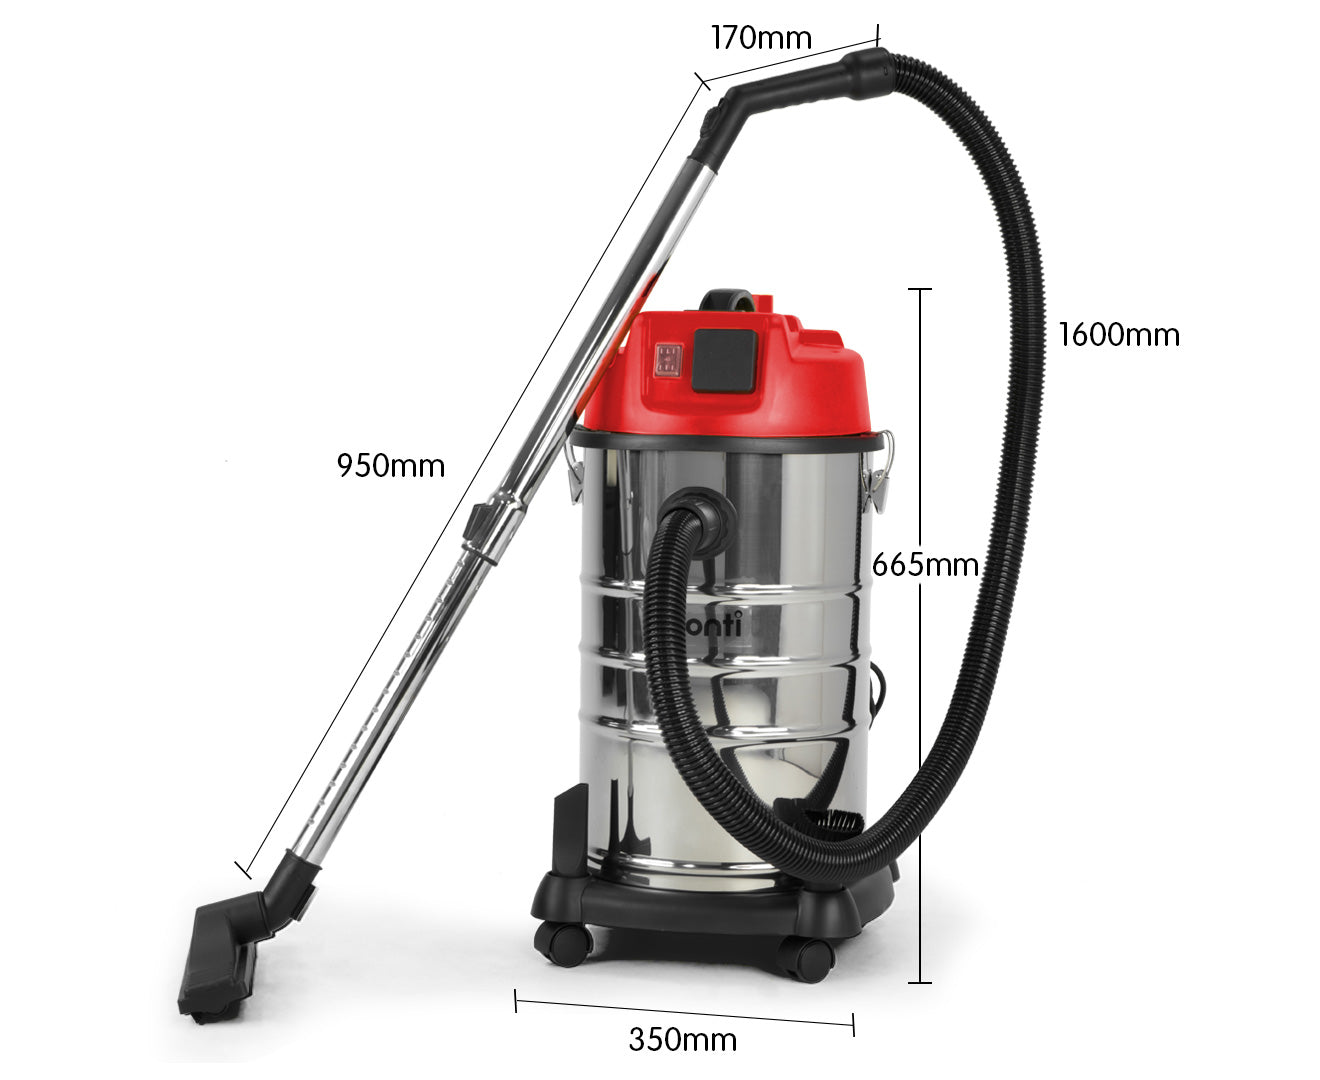 Pronti 1200W Stainless Steel Wet Dry Vacuum Cleaner - 30L